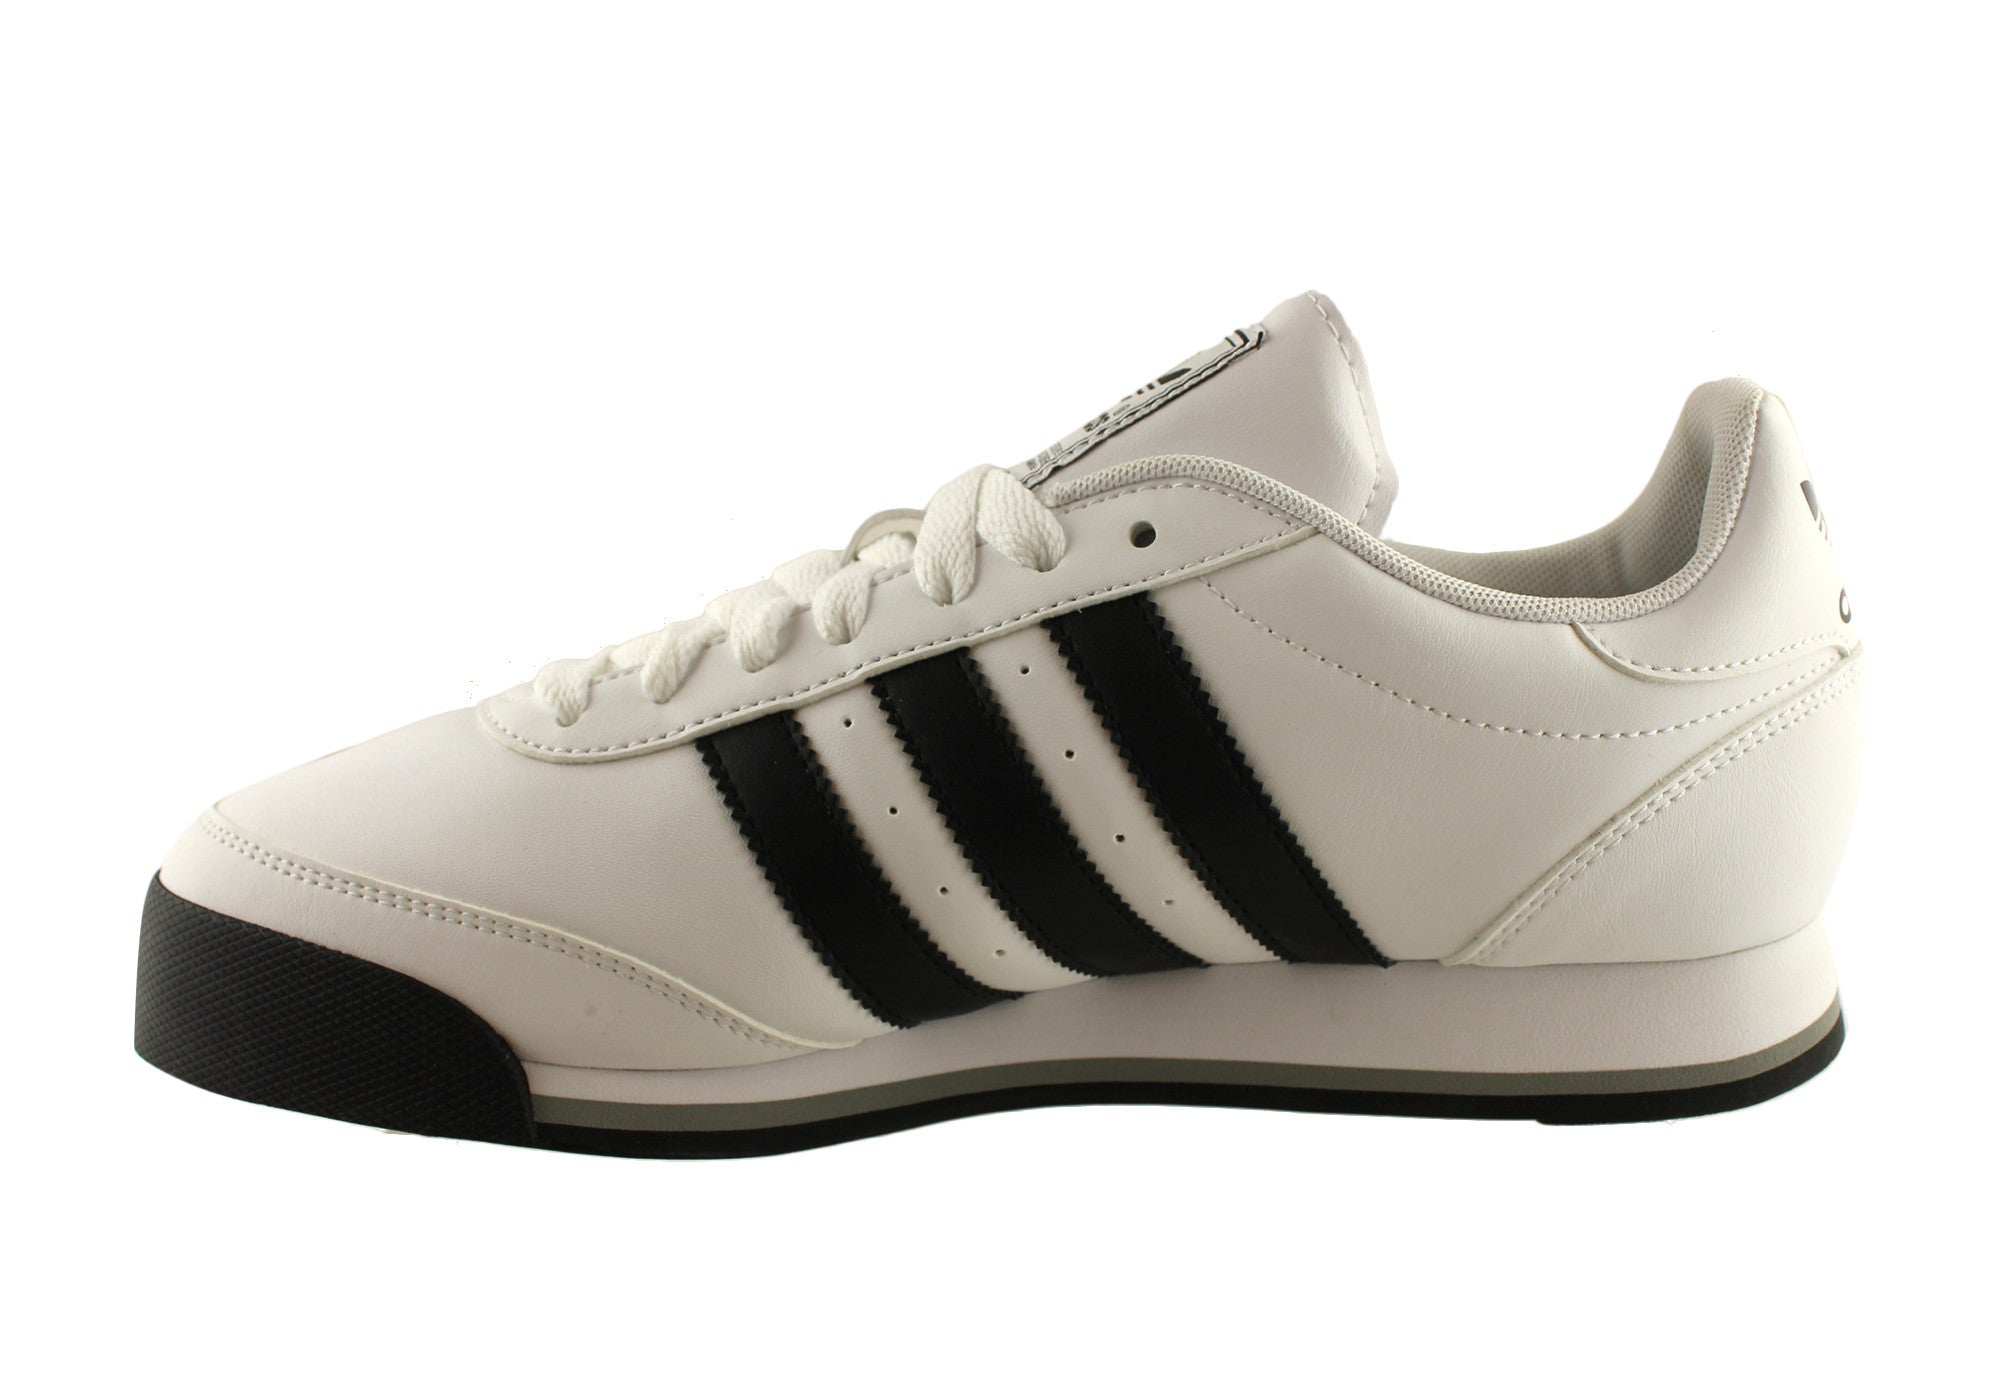 Adidas Originals Orion 2 Mens Lace Up Casual Shoes | Brand